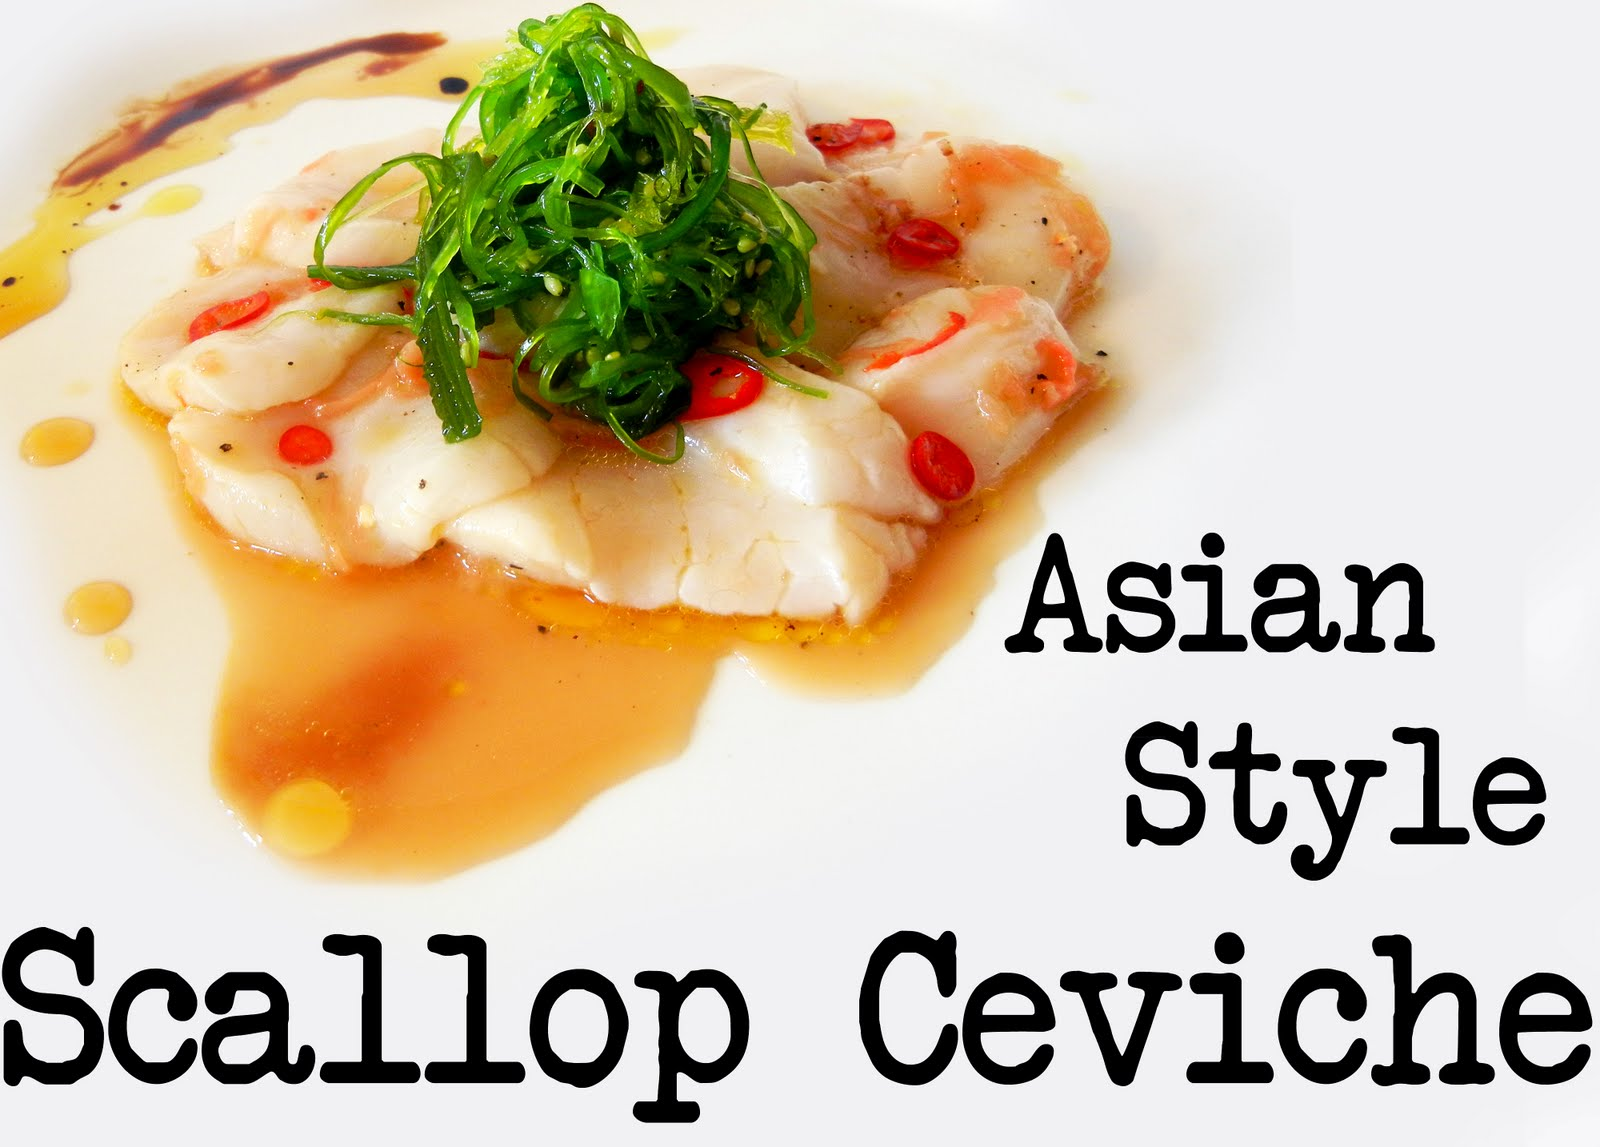 Derek's Kitchen: Asian Style Scallop Ceviche